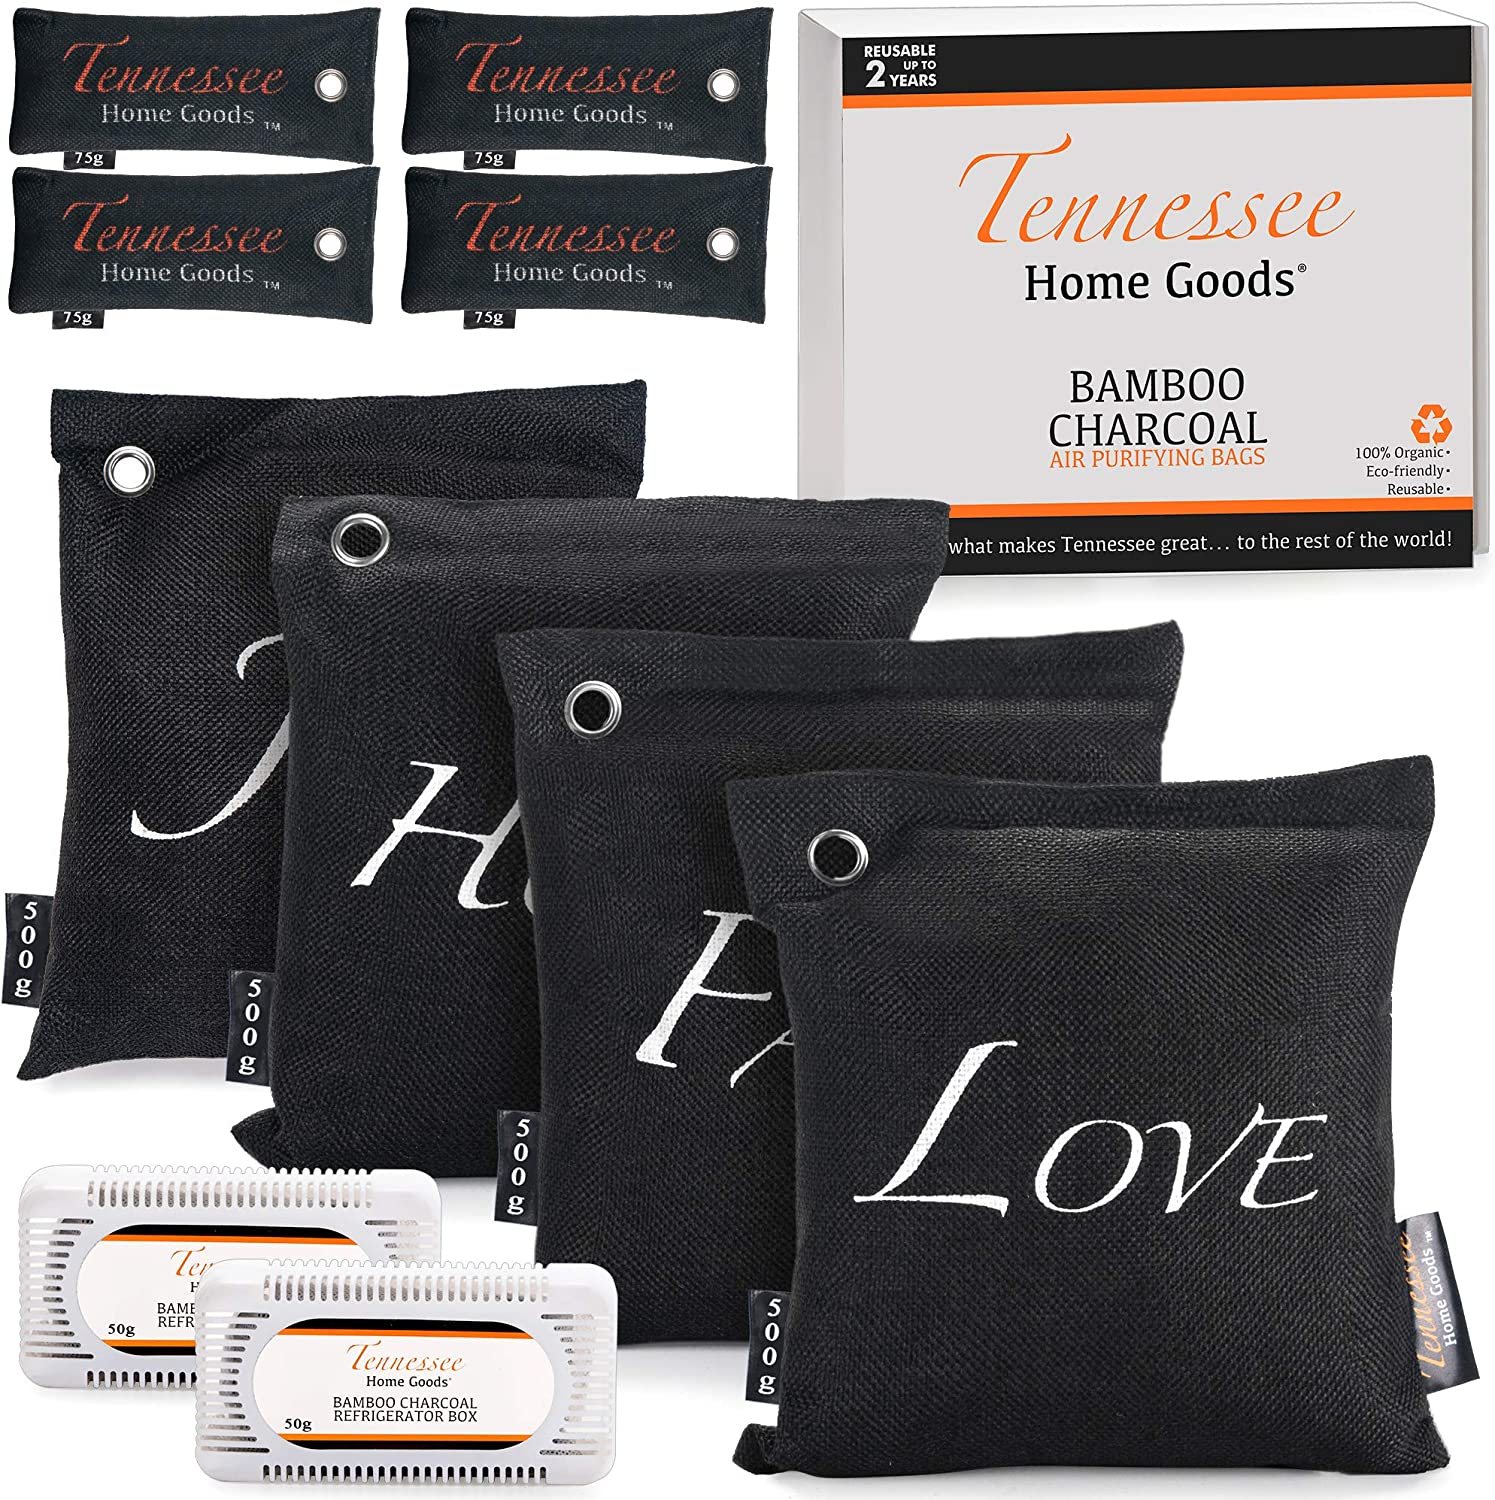 1000g Organic Bamboo Charcoal Air Purifying Bags Odor Absorber Safe for Family